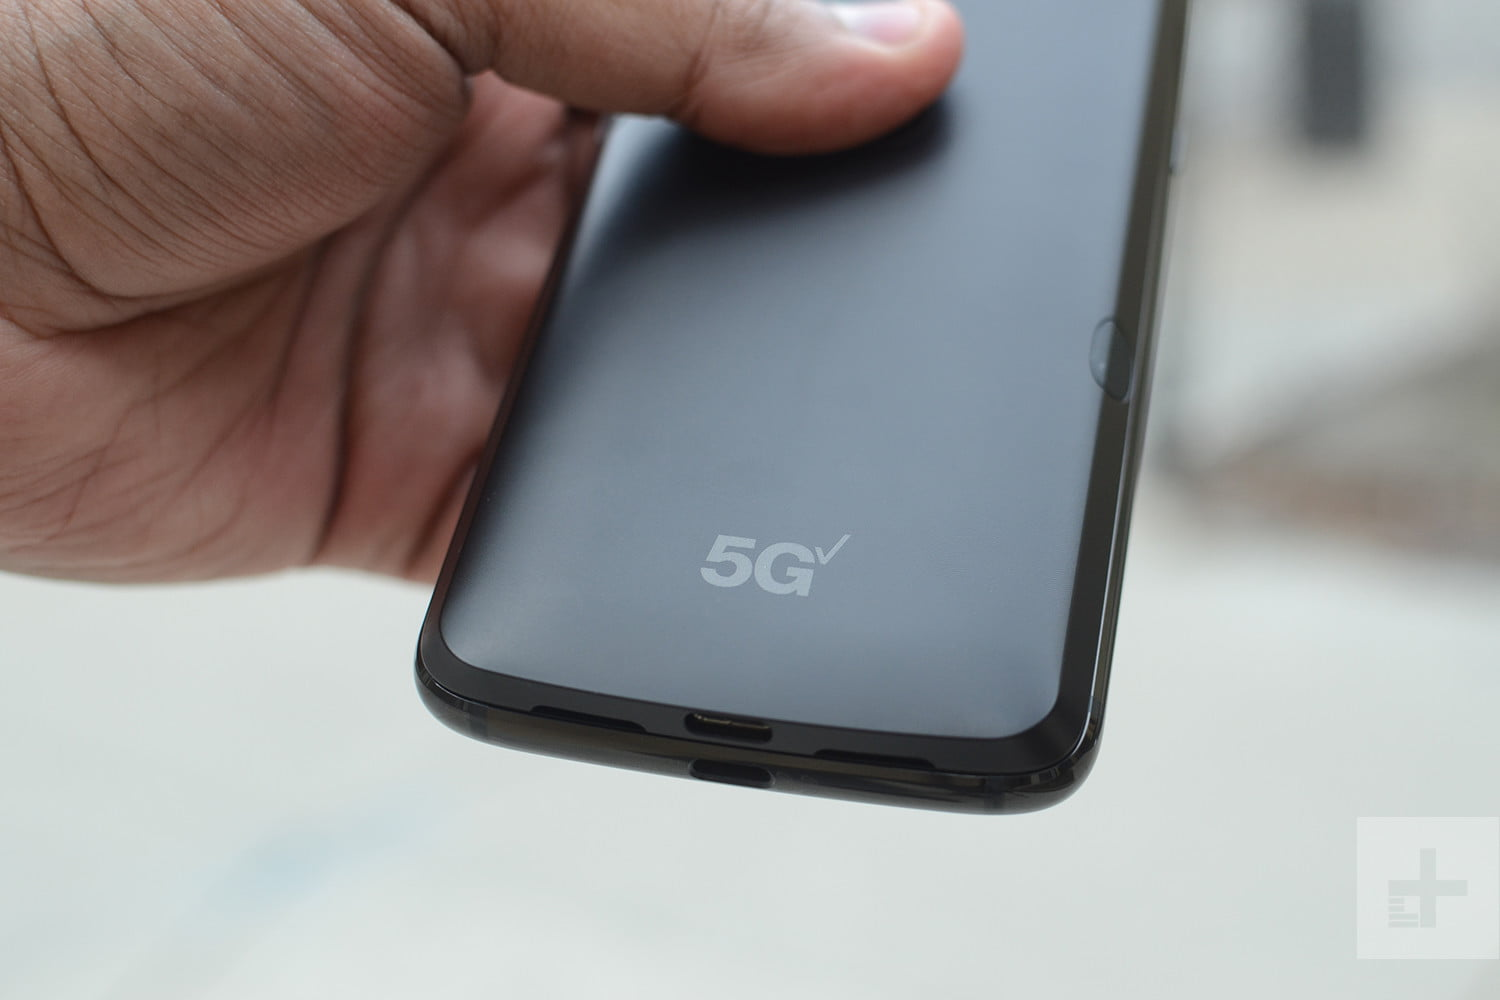 Verizon's 5G Network Is Live: Here's What It's Like to Use